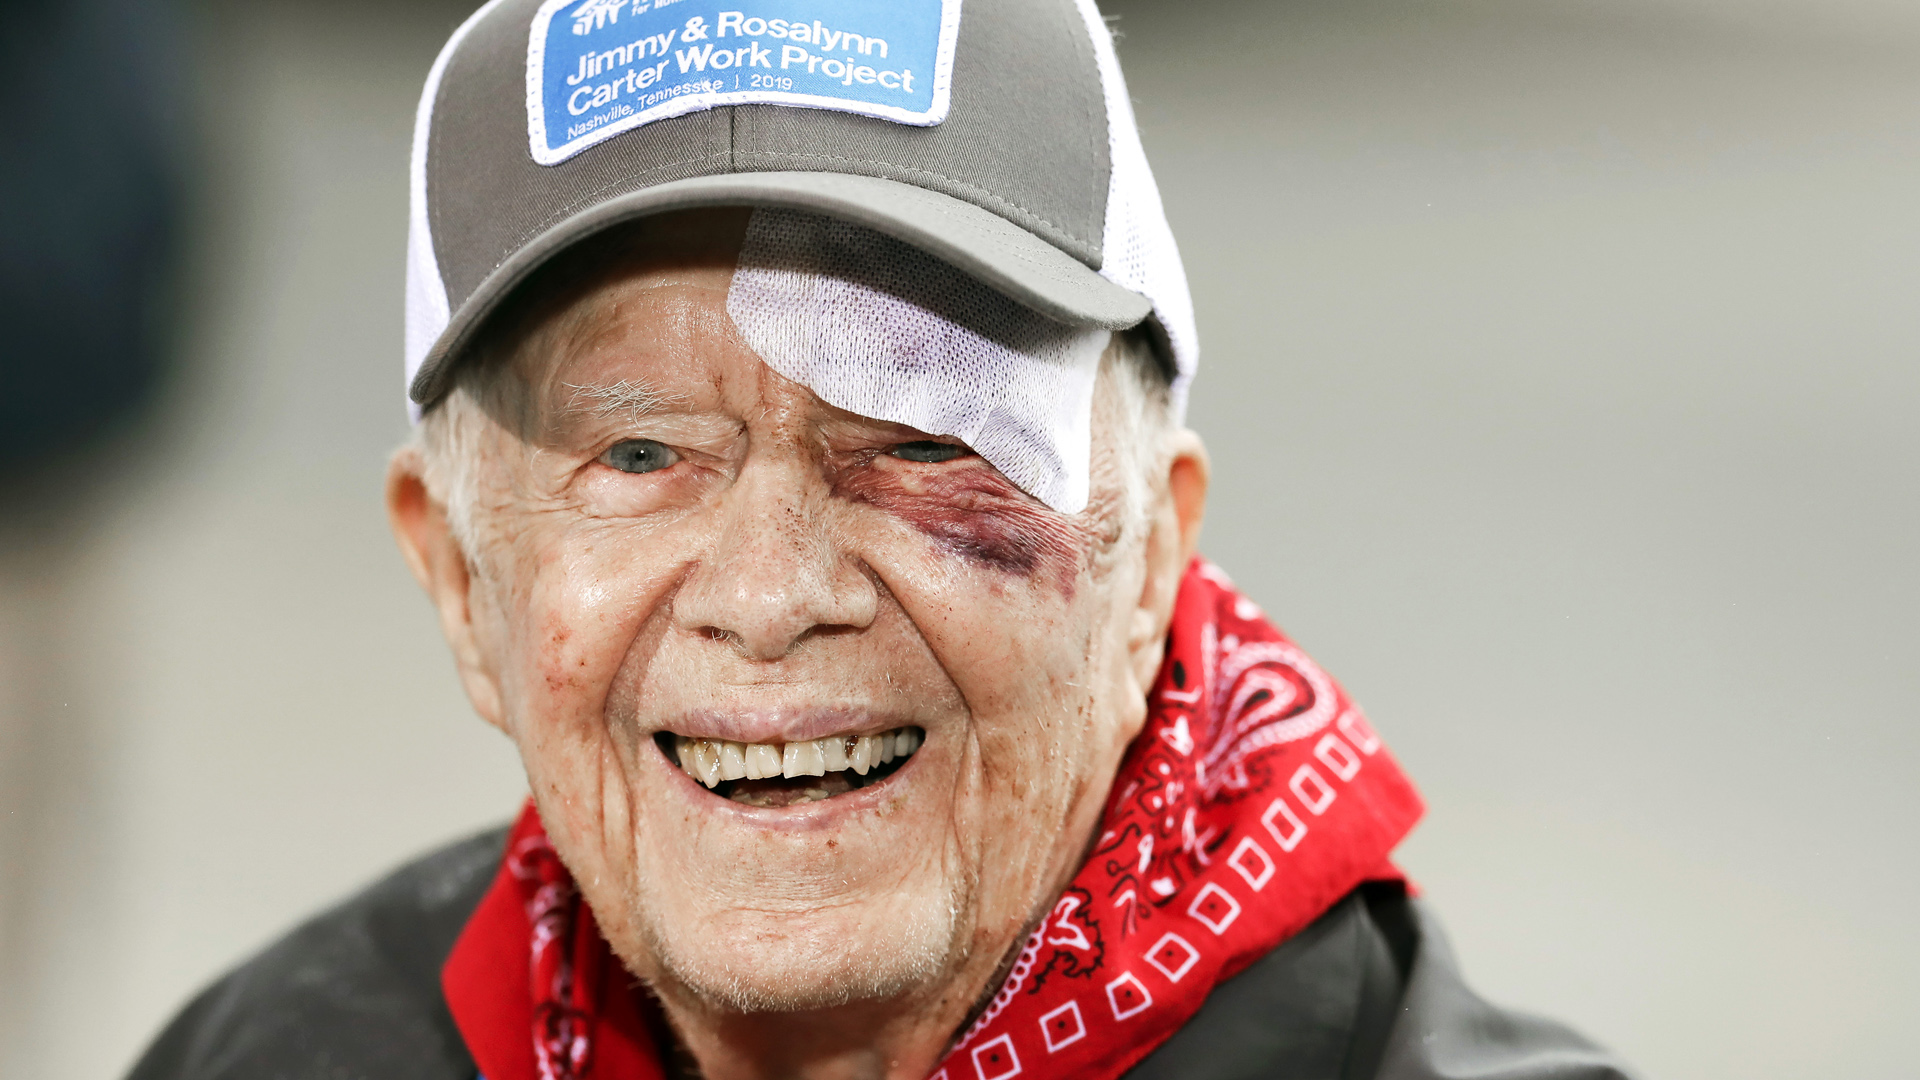 El expresidente Jimmy Carter sufre un accidente